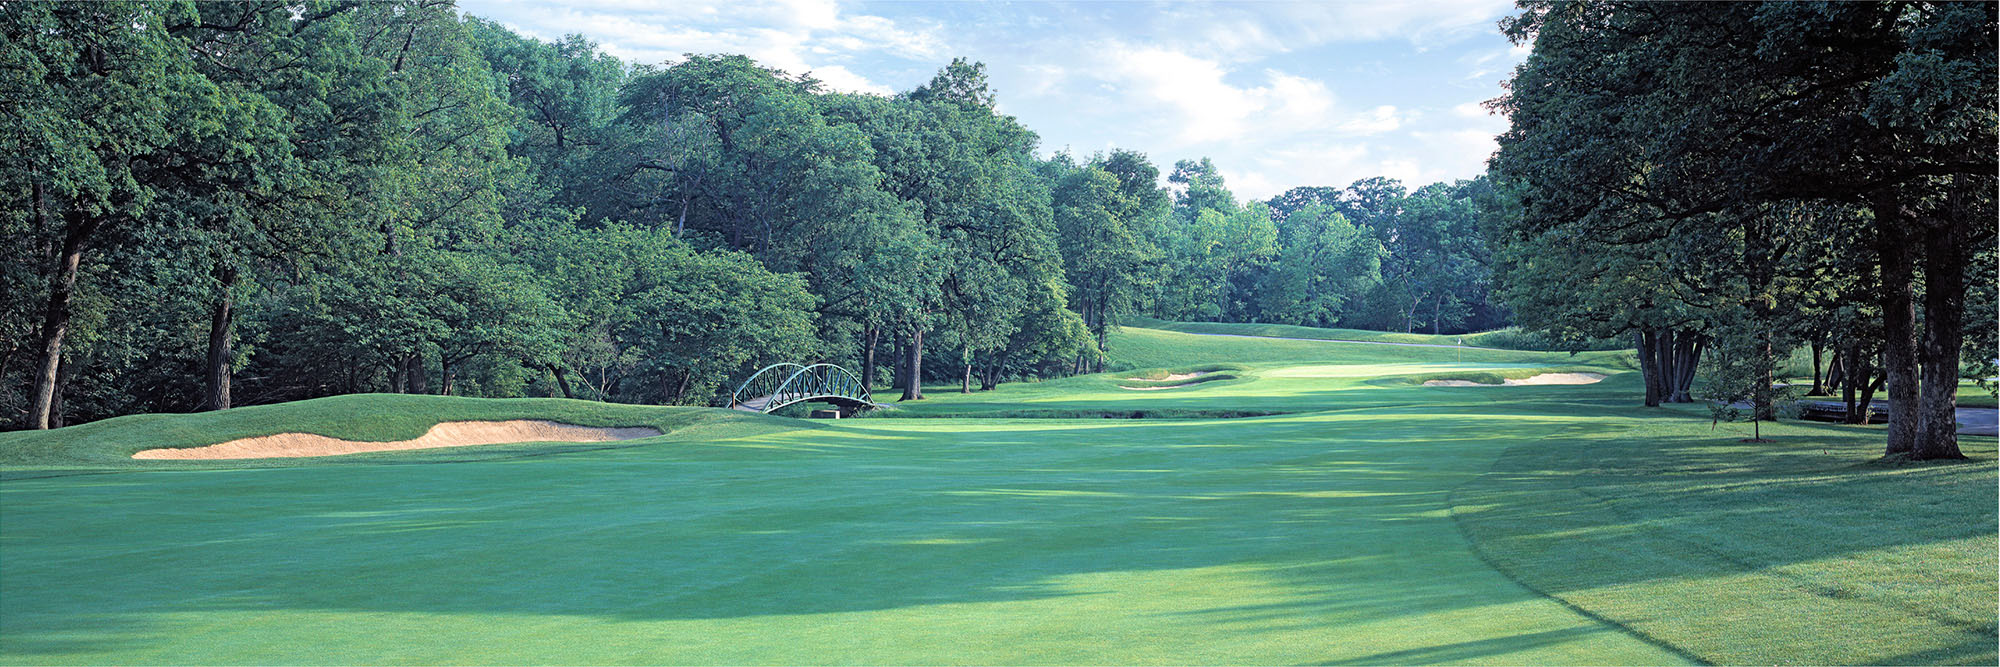 Golf Course Image - Olympia Fields North No. 12